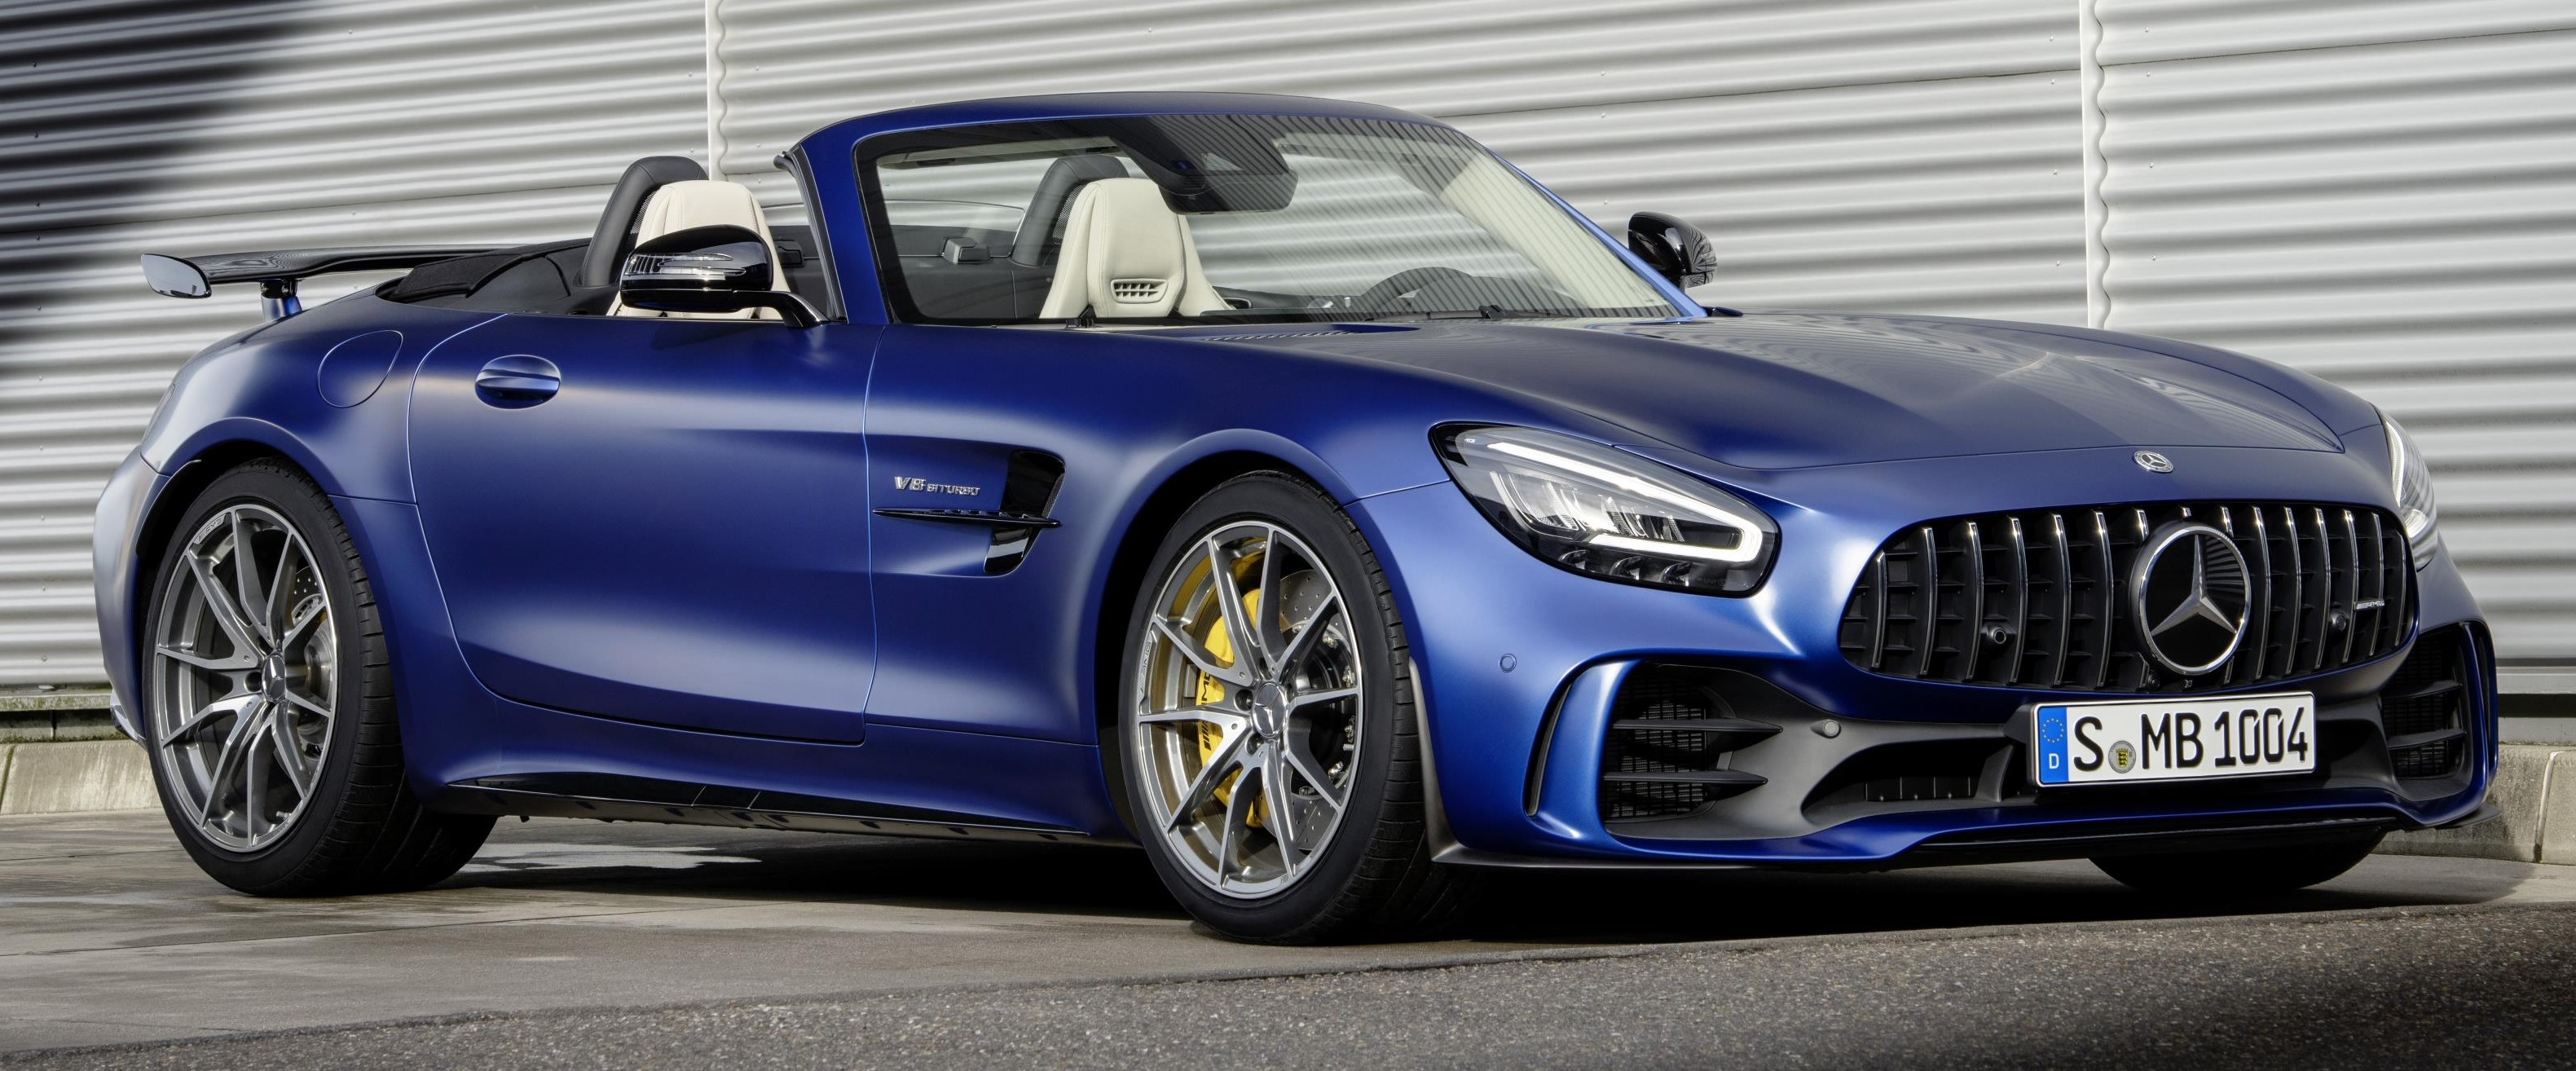 THE NEW MERCEDES-AMG GT R ROADSTER - myAutoWorld.com  Way For Diagram Wiring Switch Esp Gtr on